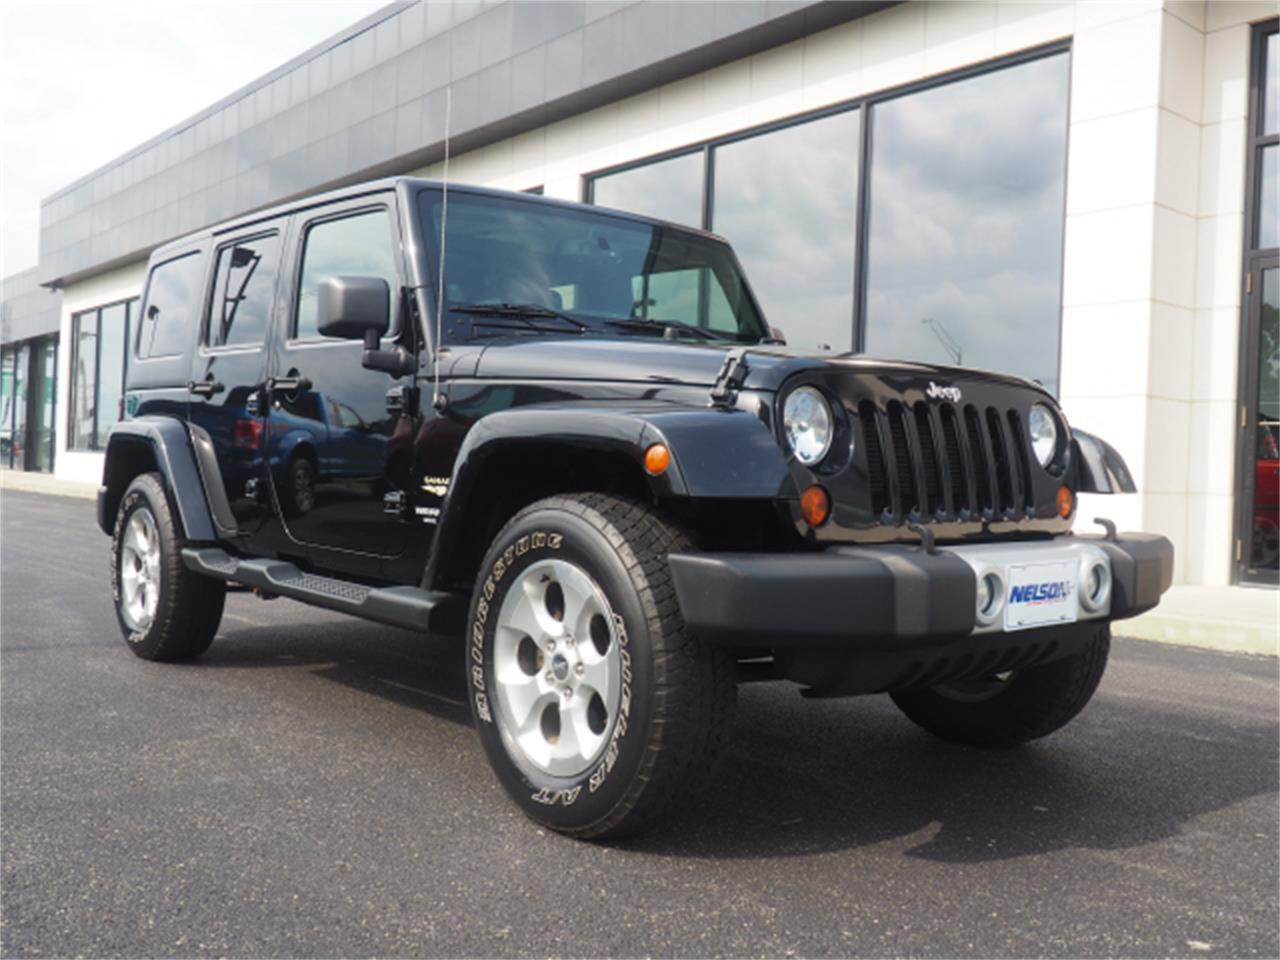 2013 Jeep Wrangler for sale in Marysville, OH – photo 28